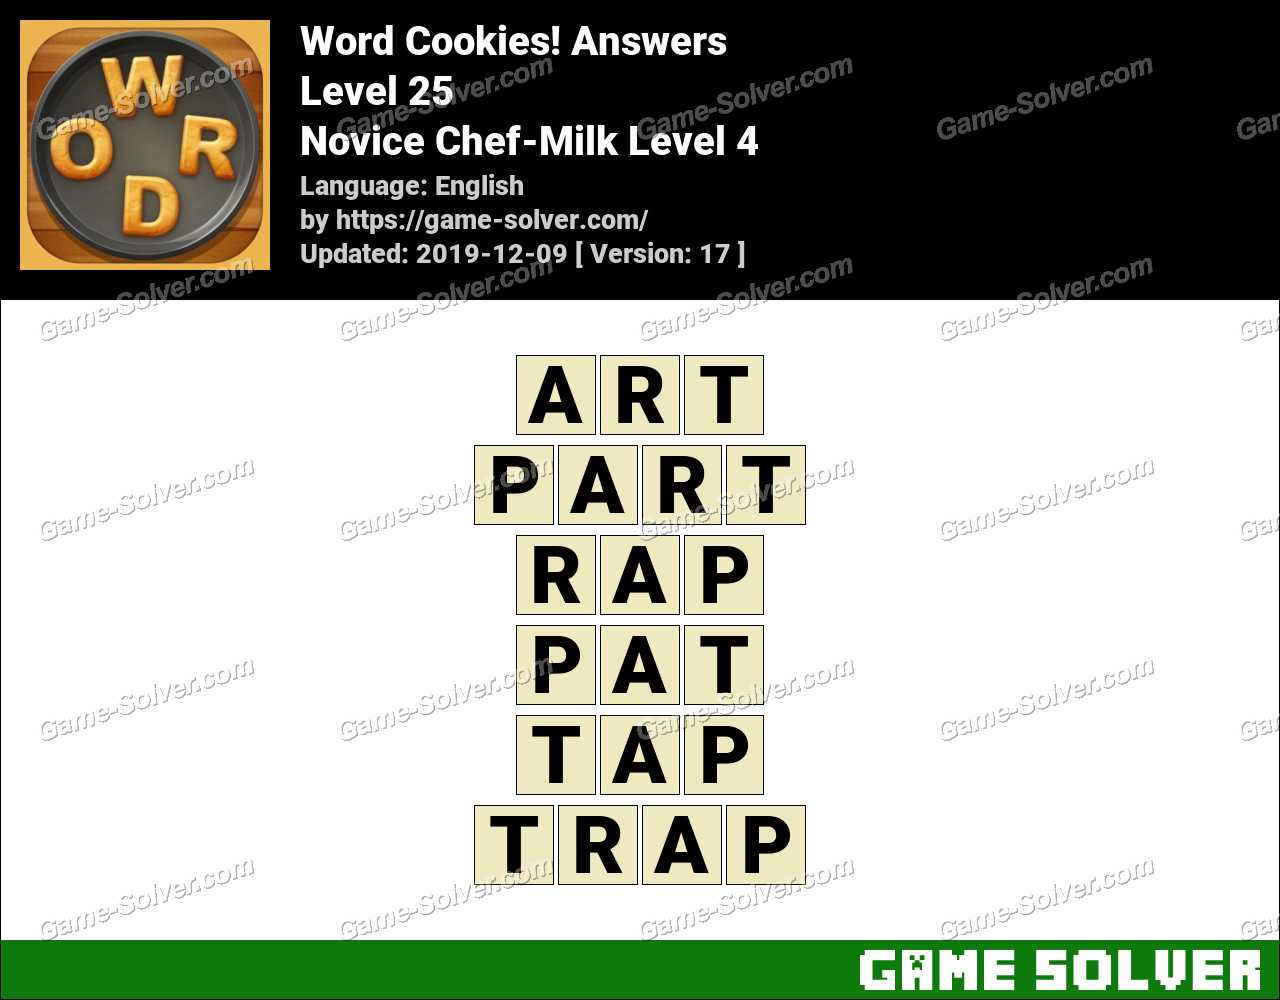 Word Cookies Novice Chef-Milk Level 4 Answers